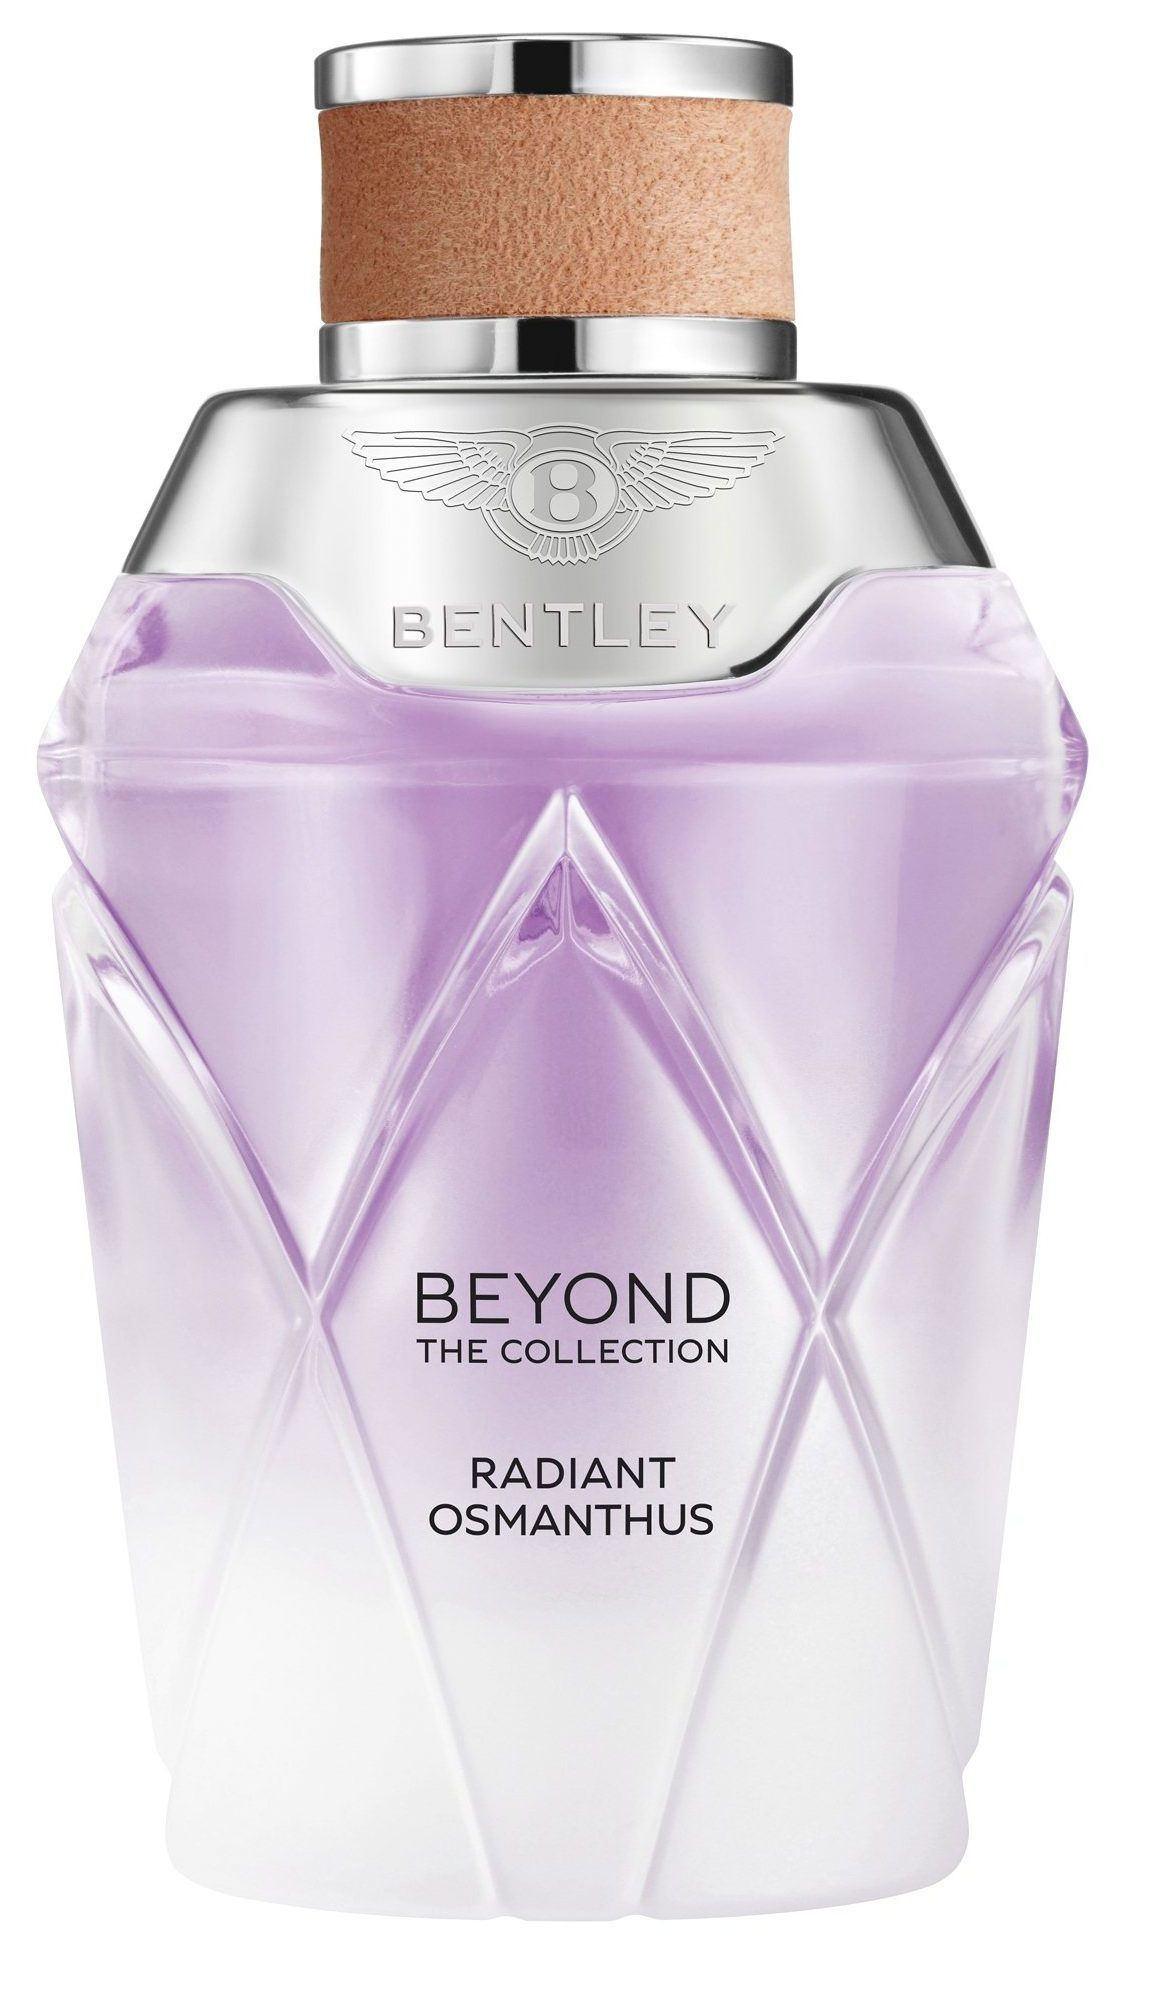 BENTLEY_BEYOND_RADIANT_OSMANTHUS.